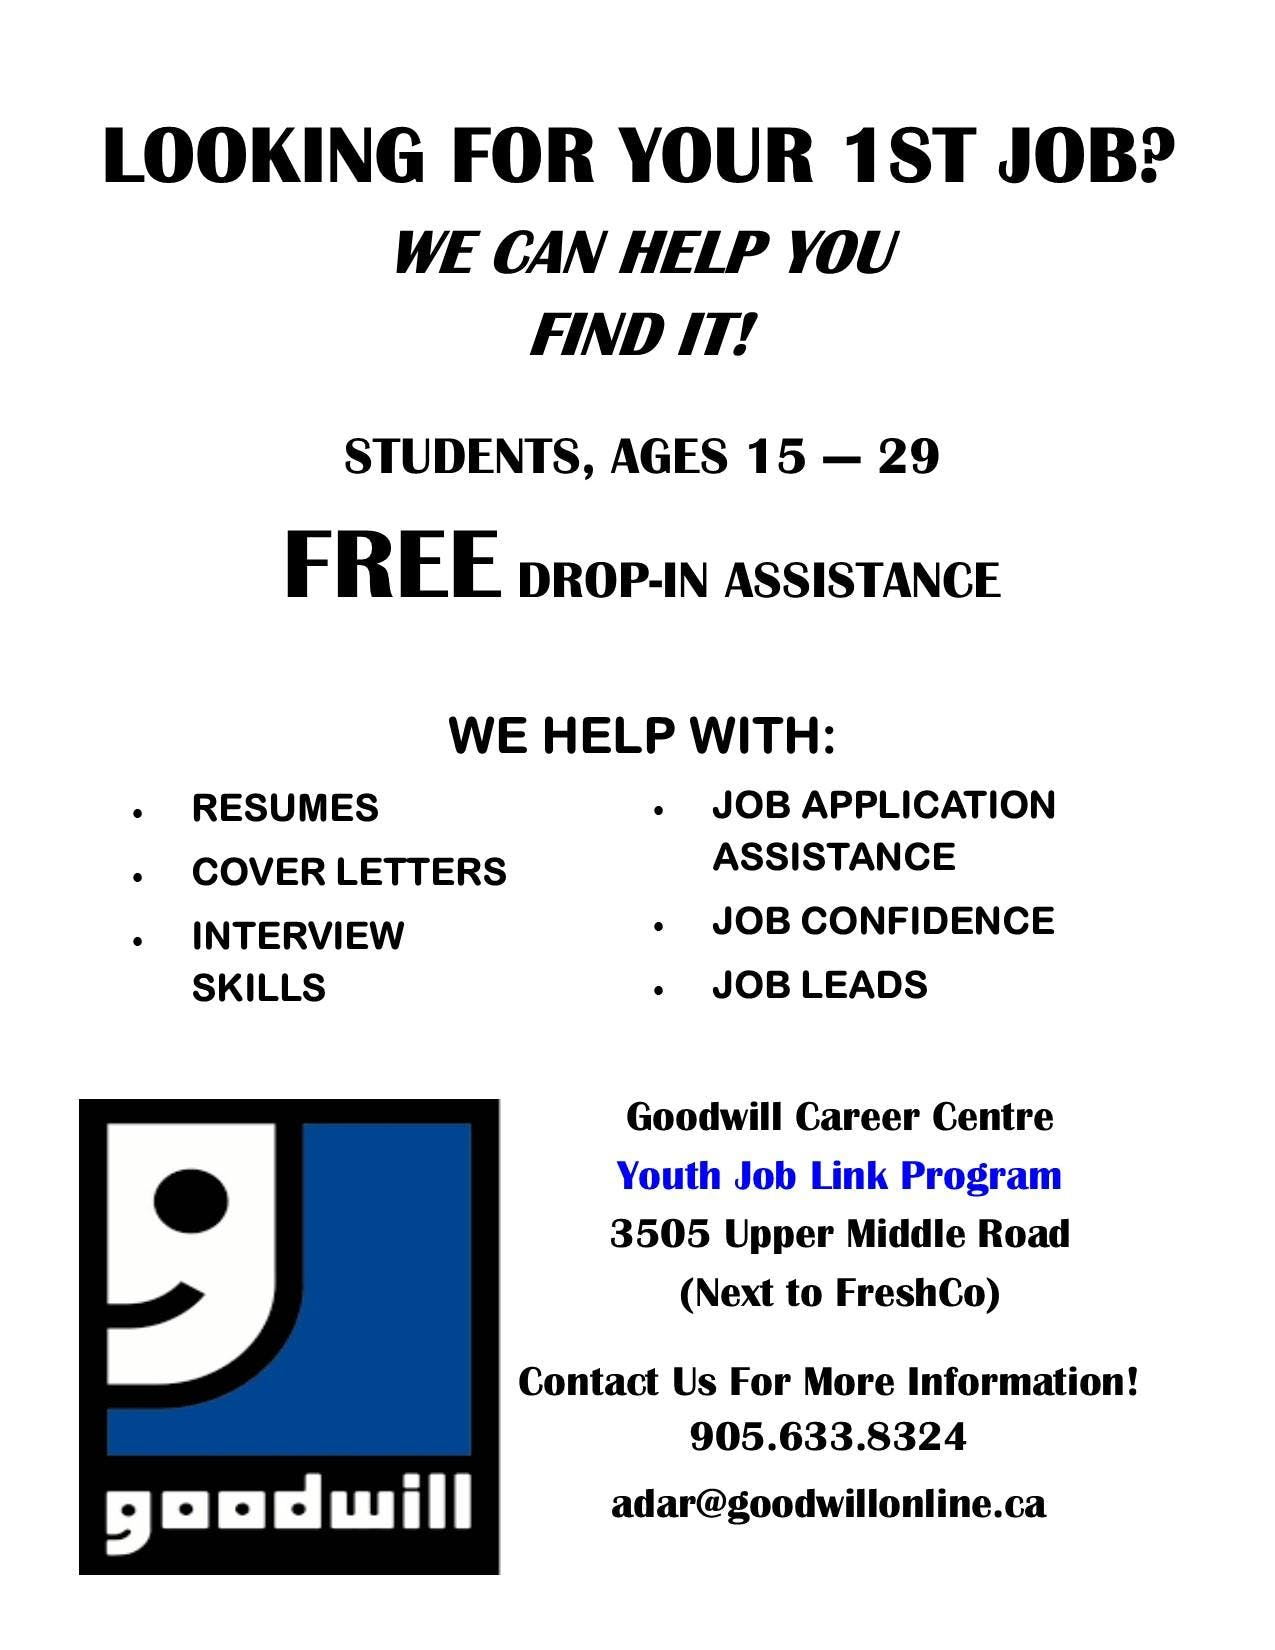 Do You Need a Job?Are You Between 15-29 yrs :